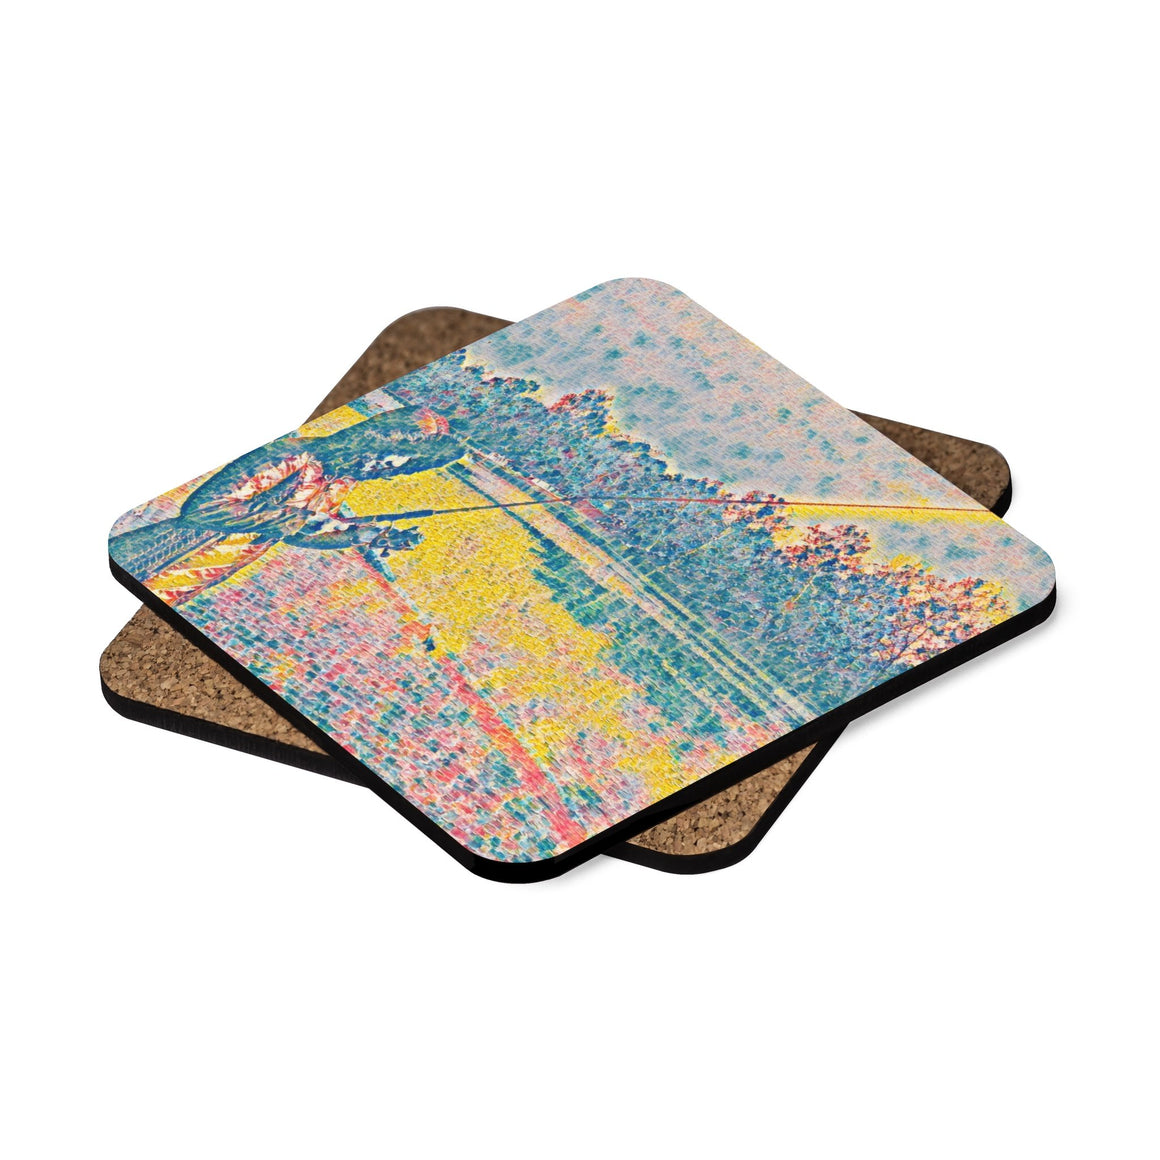 Levi Thang Fishing Design 15 Square Hardboard Coaster Set - 4pcs - I Am A Dreamer